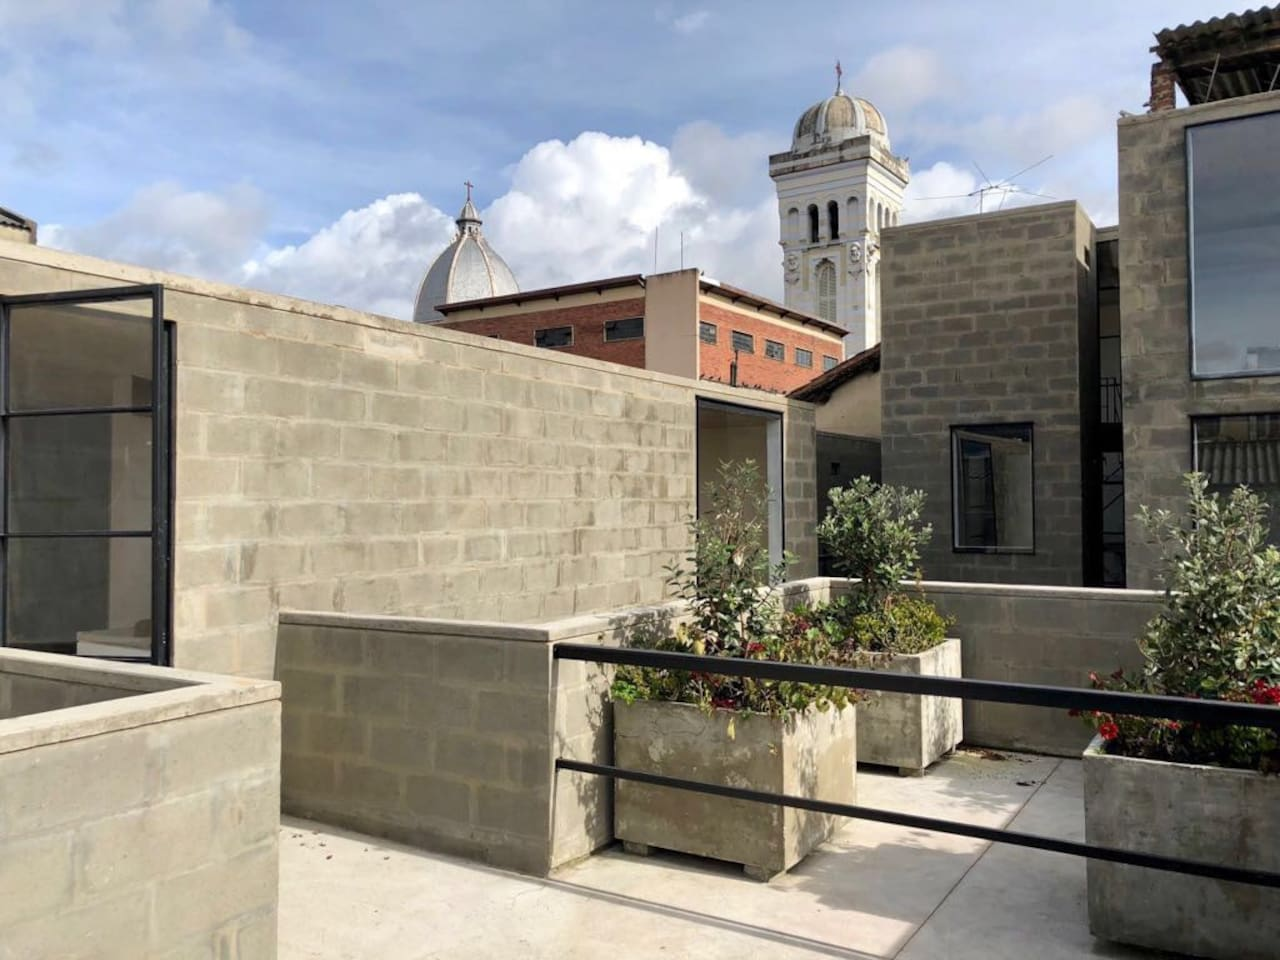 Desde la terraza de este hermoso apto se pueden ver las cúpulas de Iglesias famosas en el centro de Bogota al igual que el cerro de Monserrate. ( This apartment is located in the historic center of Bogota five blocks away from Plaza de Bolivar, it has a private Terrance from here you may apreciate some of the architecture of the center and also take a look to Monserrate. If you have plans to visit Bogota Old center it could be a great choice.)